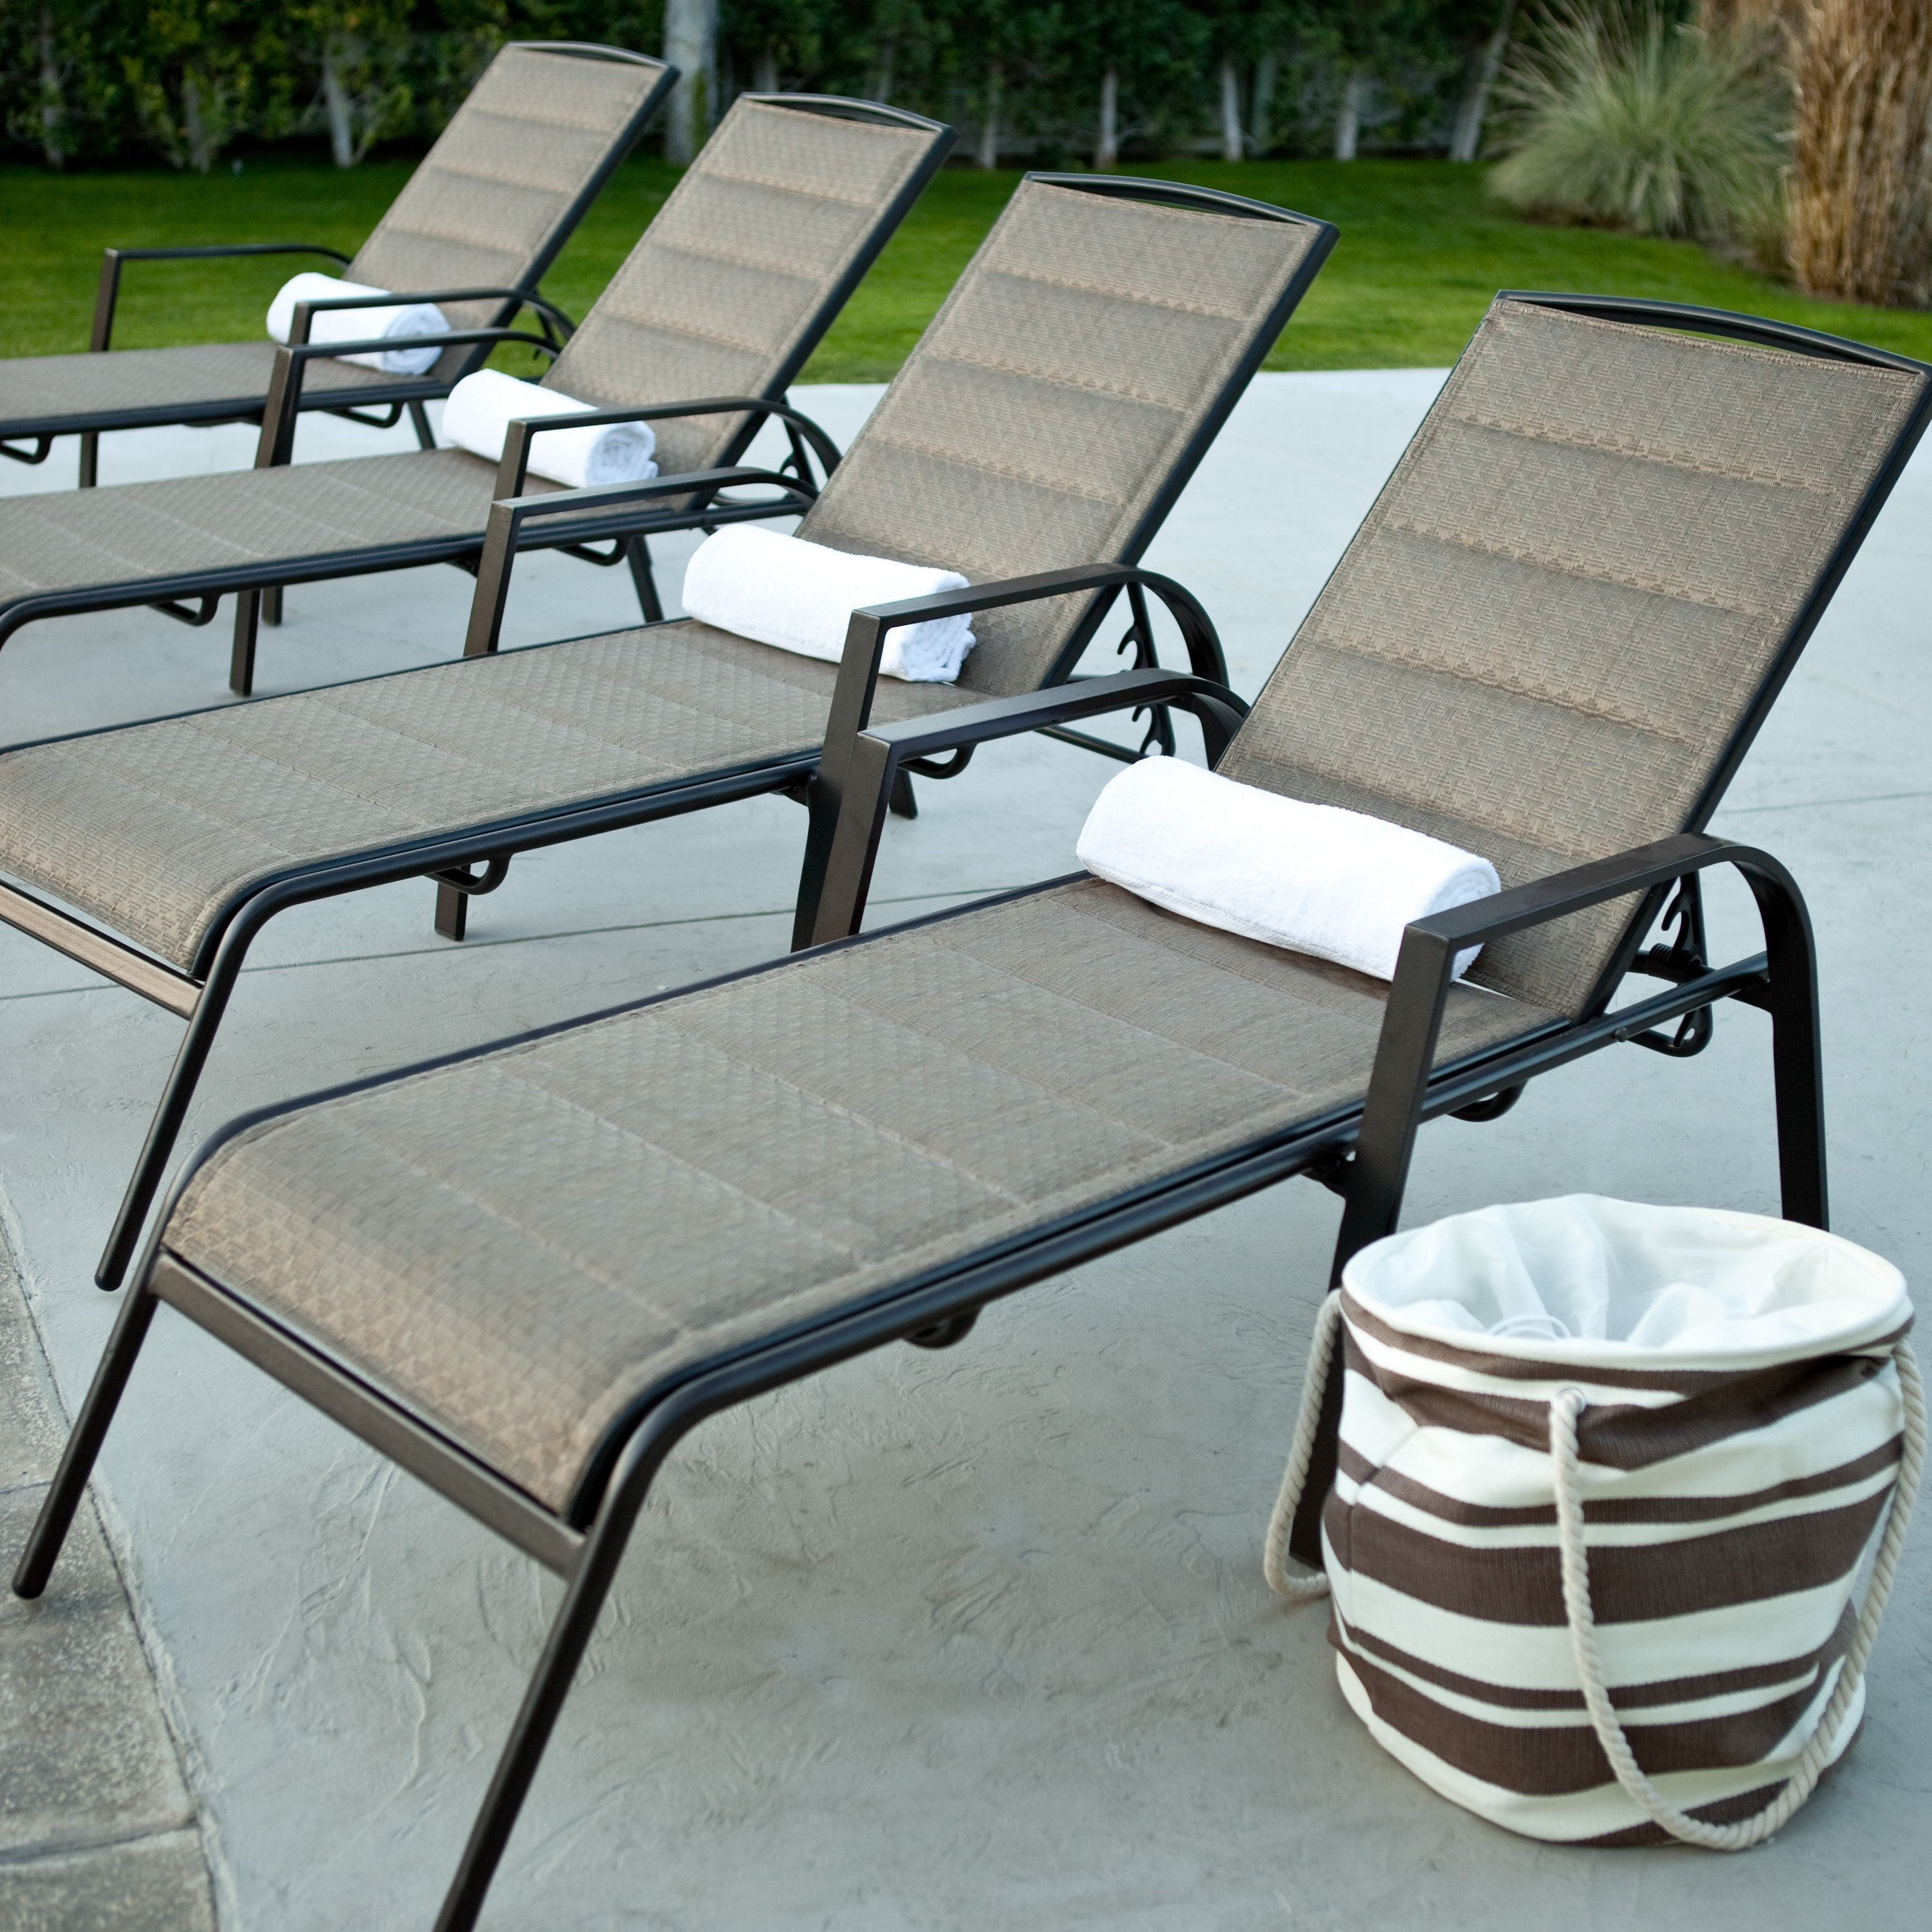 Most Recent Luxury Outdoor Chaise Lounge Chairs Intended For Luxury Outdoor Chaise Lounge Chairs • Lounge Chairs Ideas (View 11 of 15)